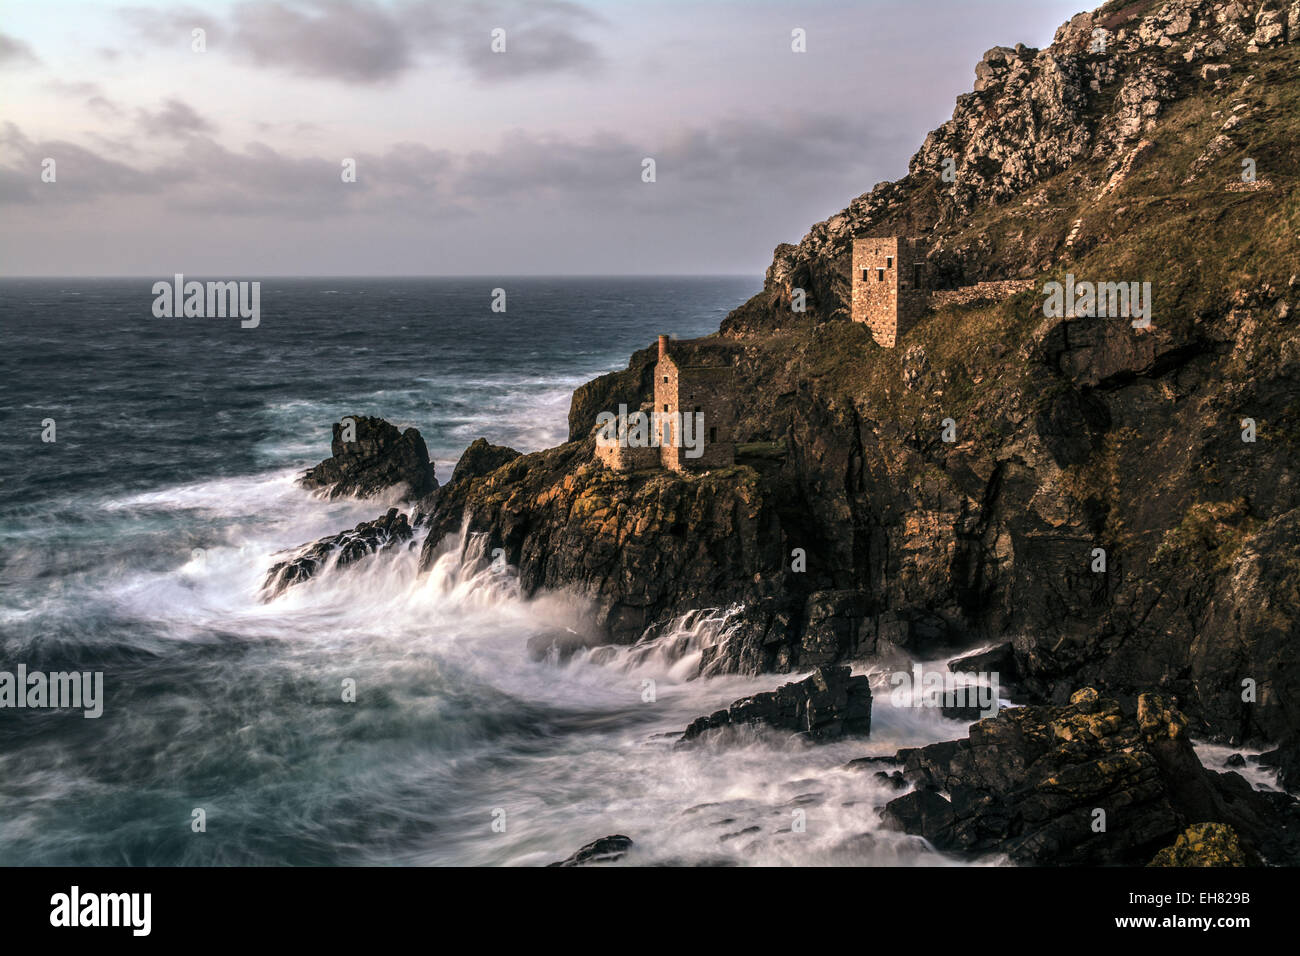 The count house at Botallack tin mine in Cornwall. - Stock Image